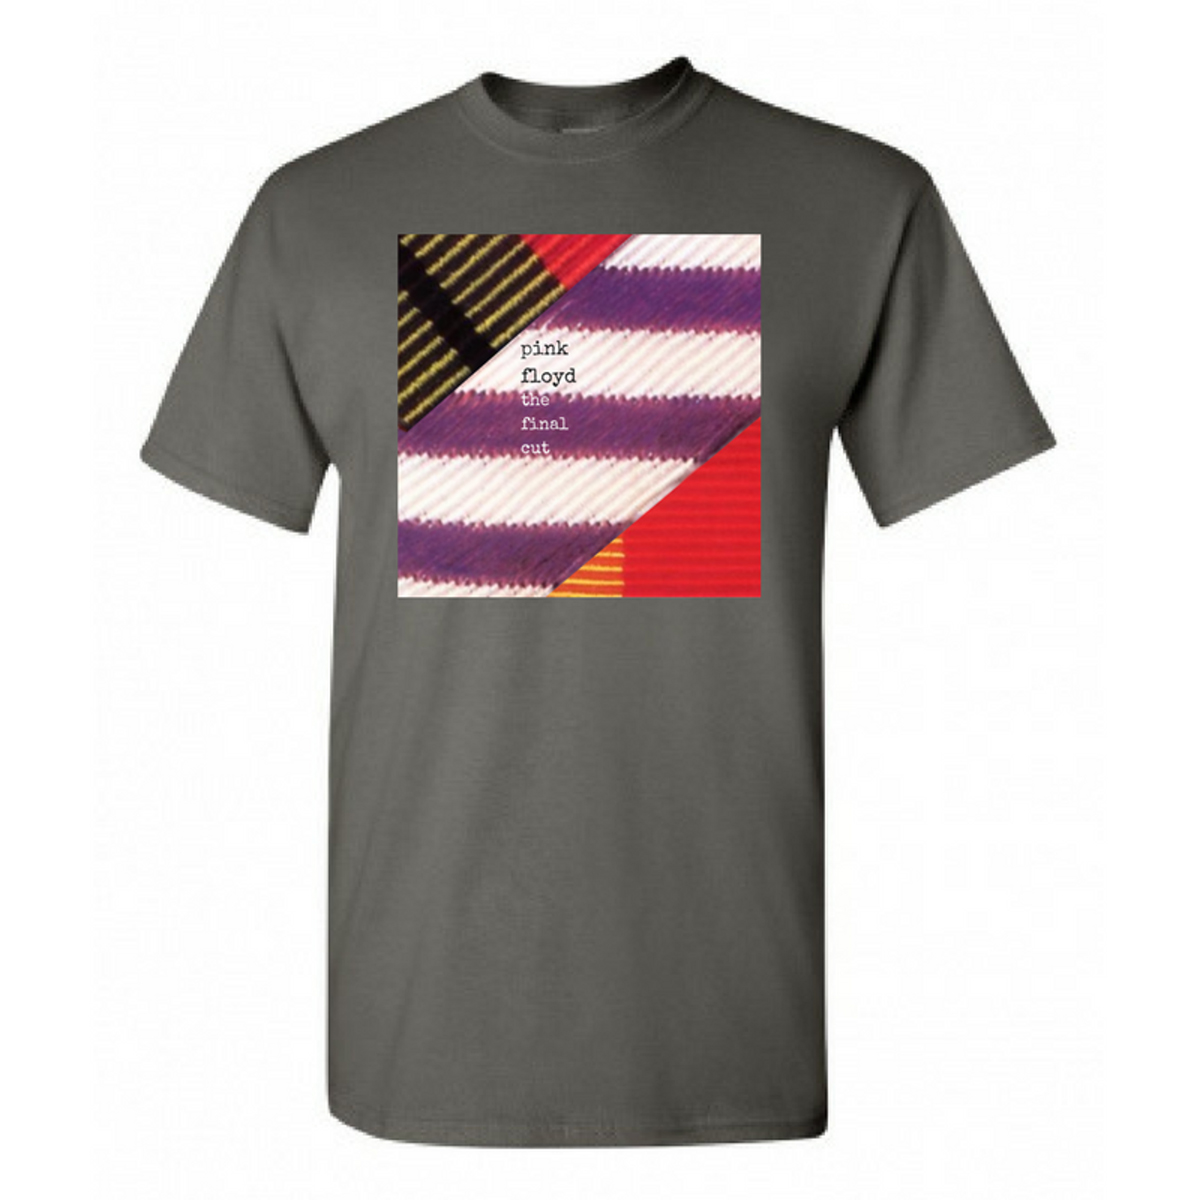 The Final Cut Somber Stripes T-Shirt